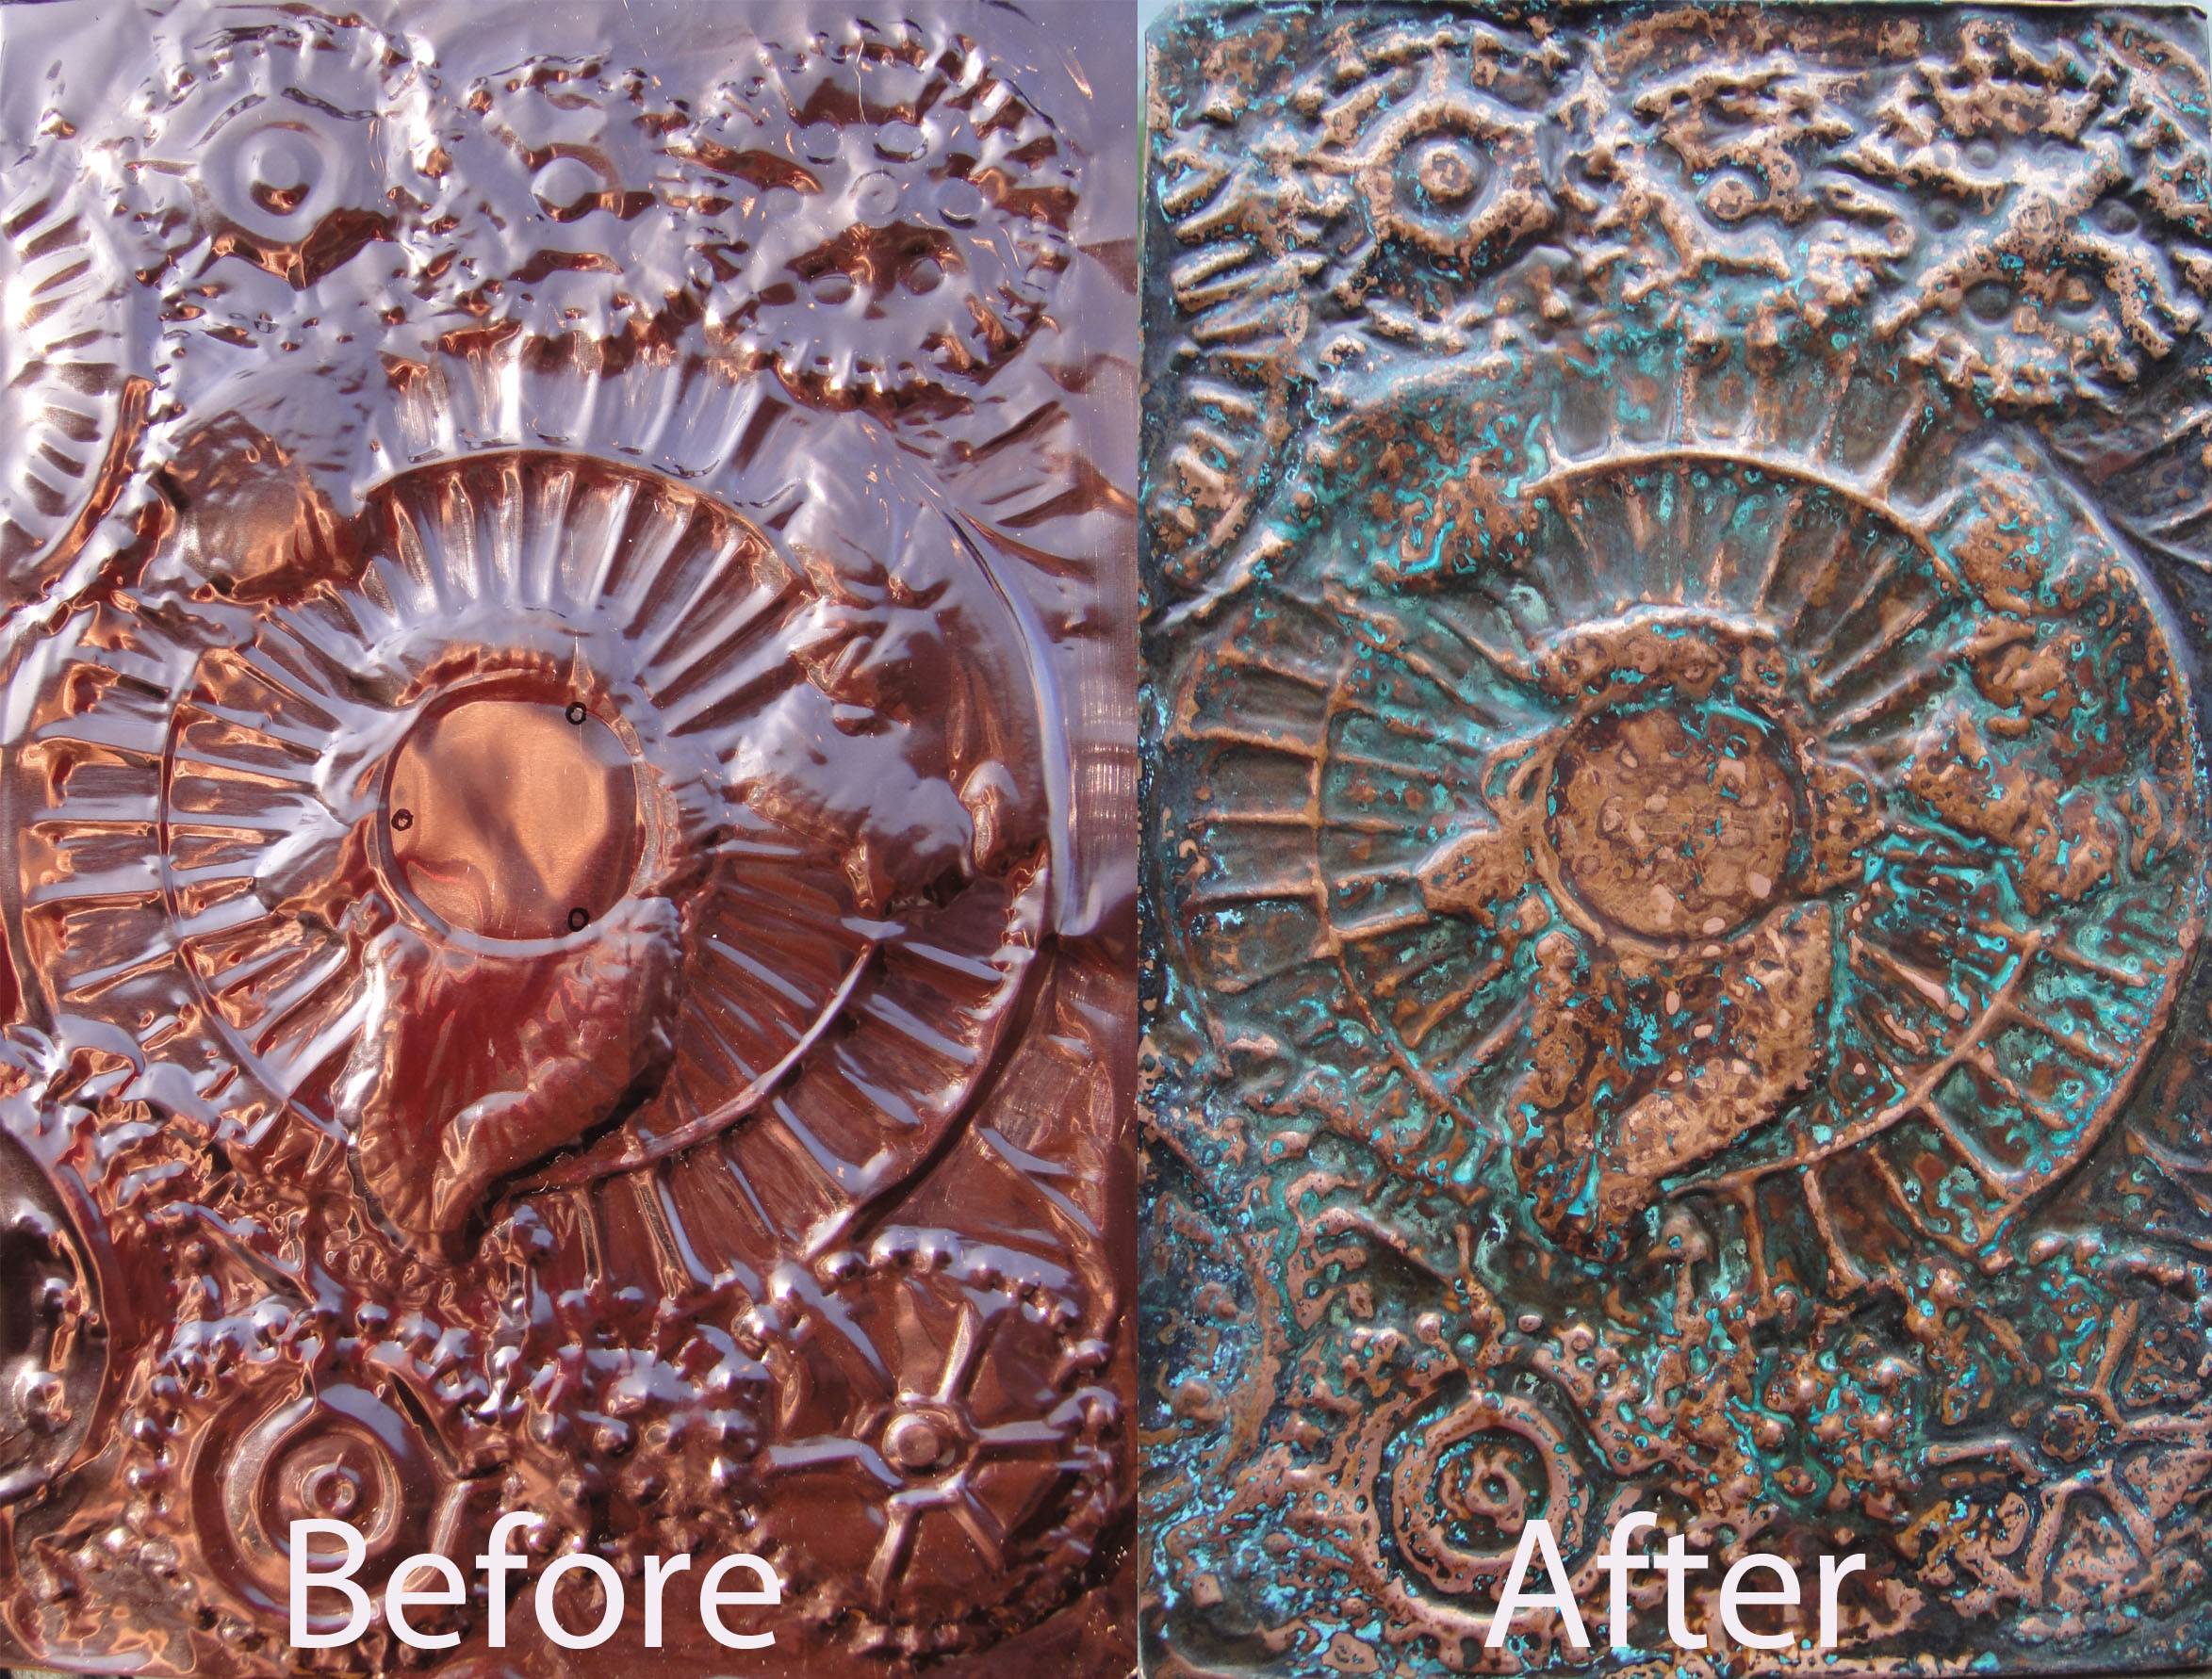 how to age copper using only household cleaners art instinctart instinct. Black Bedroom Furniture Sets. Home Design Ideas